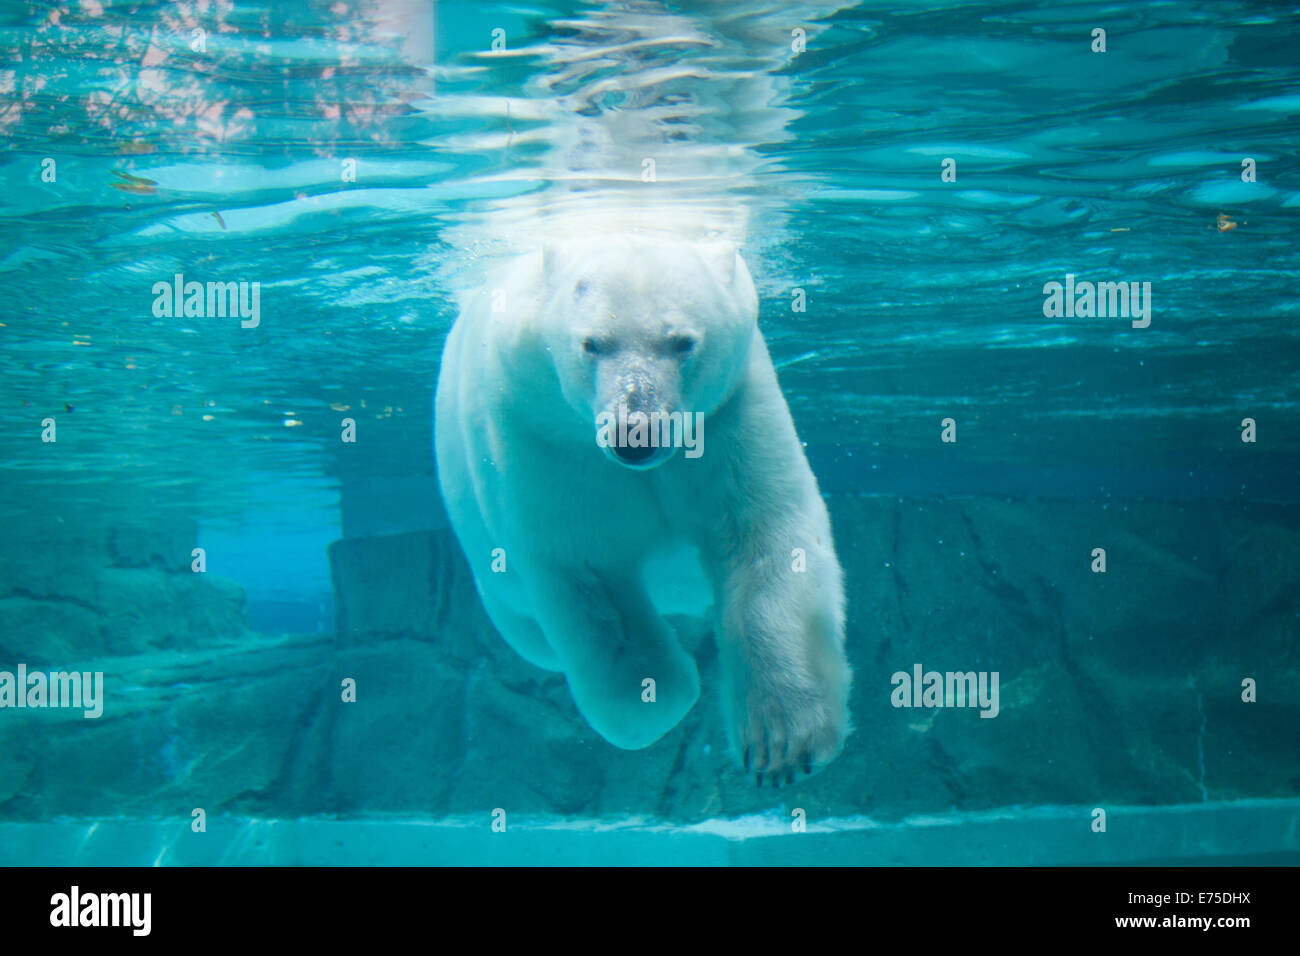 Anana, the resident female polar bear of Lincoln Park Zoo in Chicago, swims underwater on a hot summer's day. - Stock Image